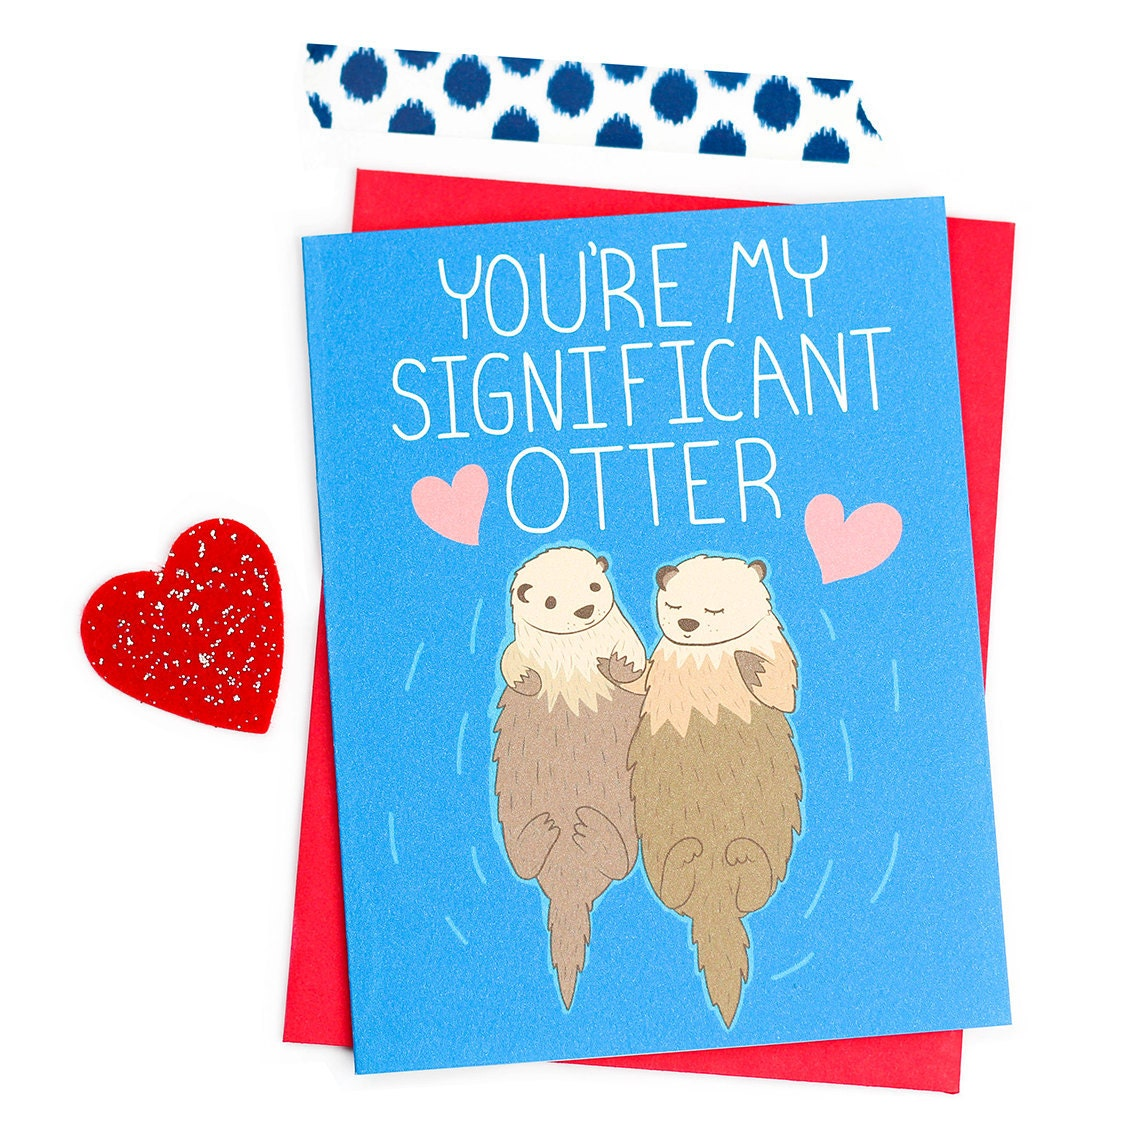 Valentines Day cards Etsy – What to Write in Boyfriends Valentines Day Card